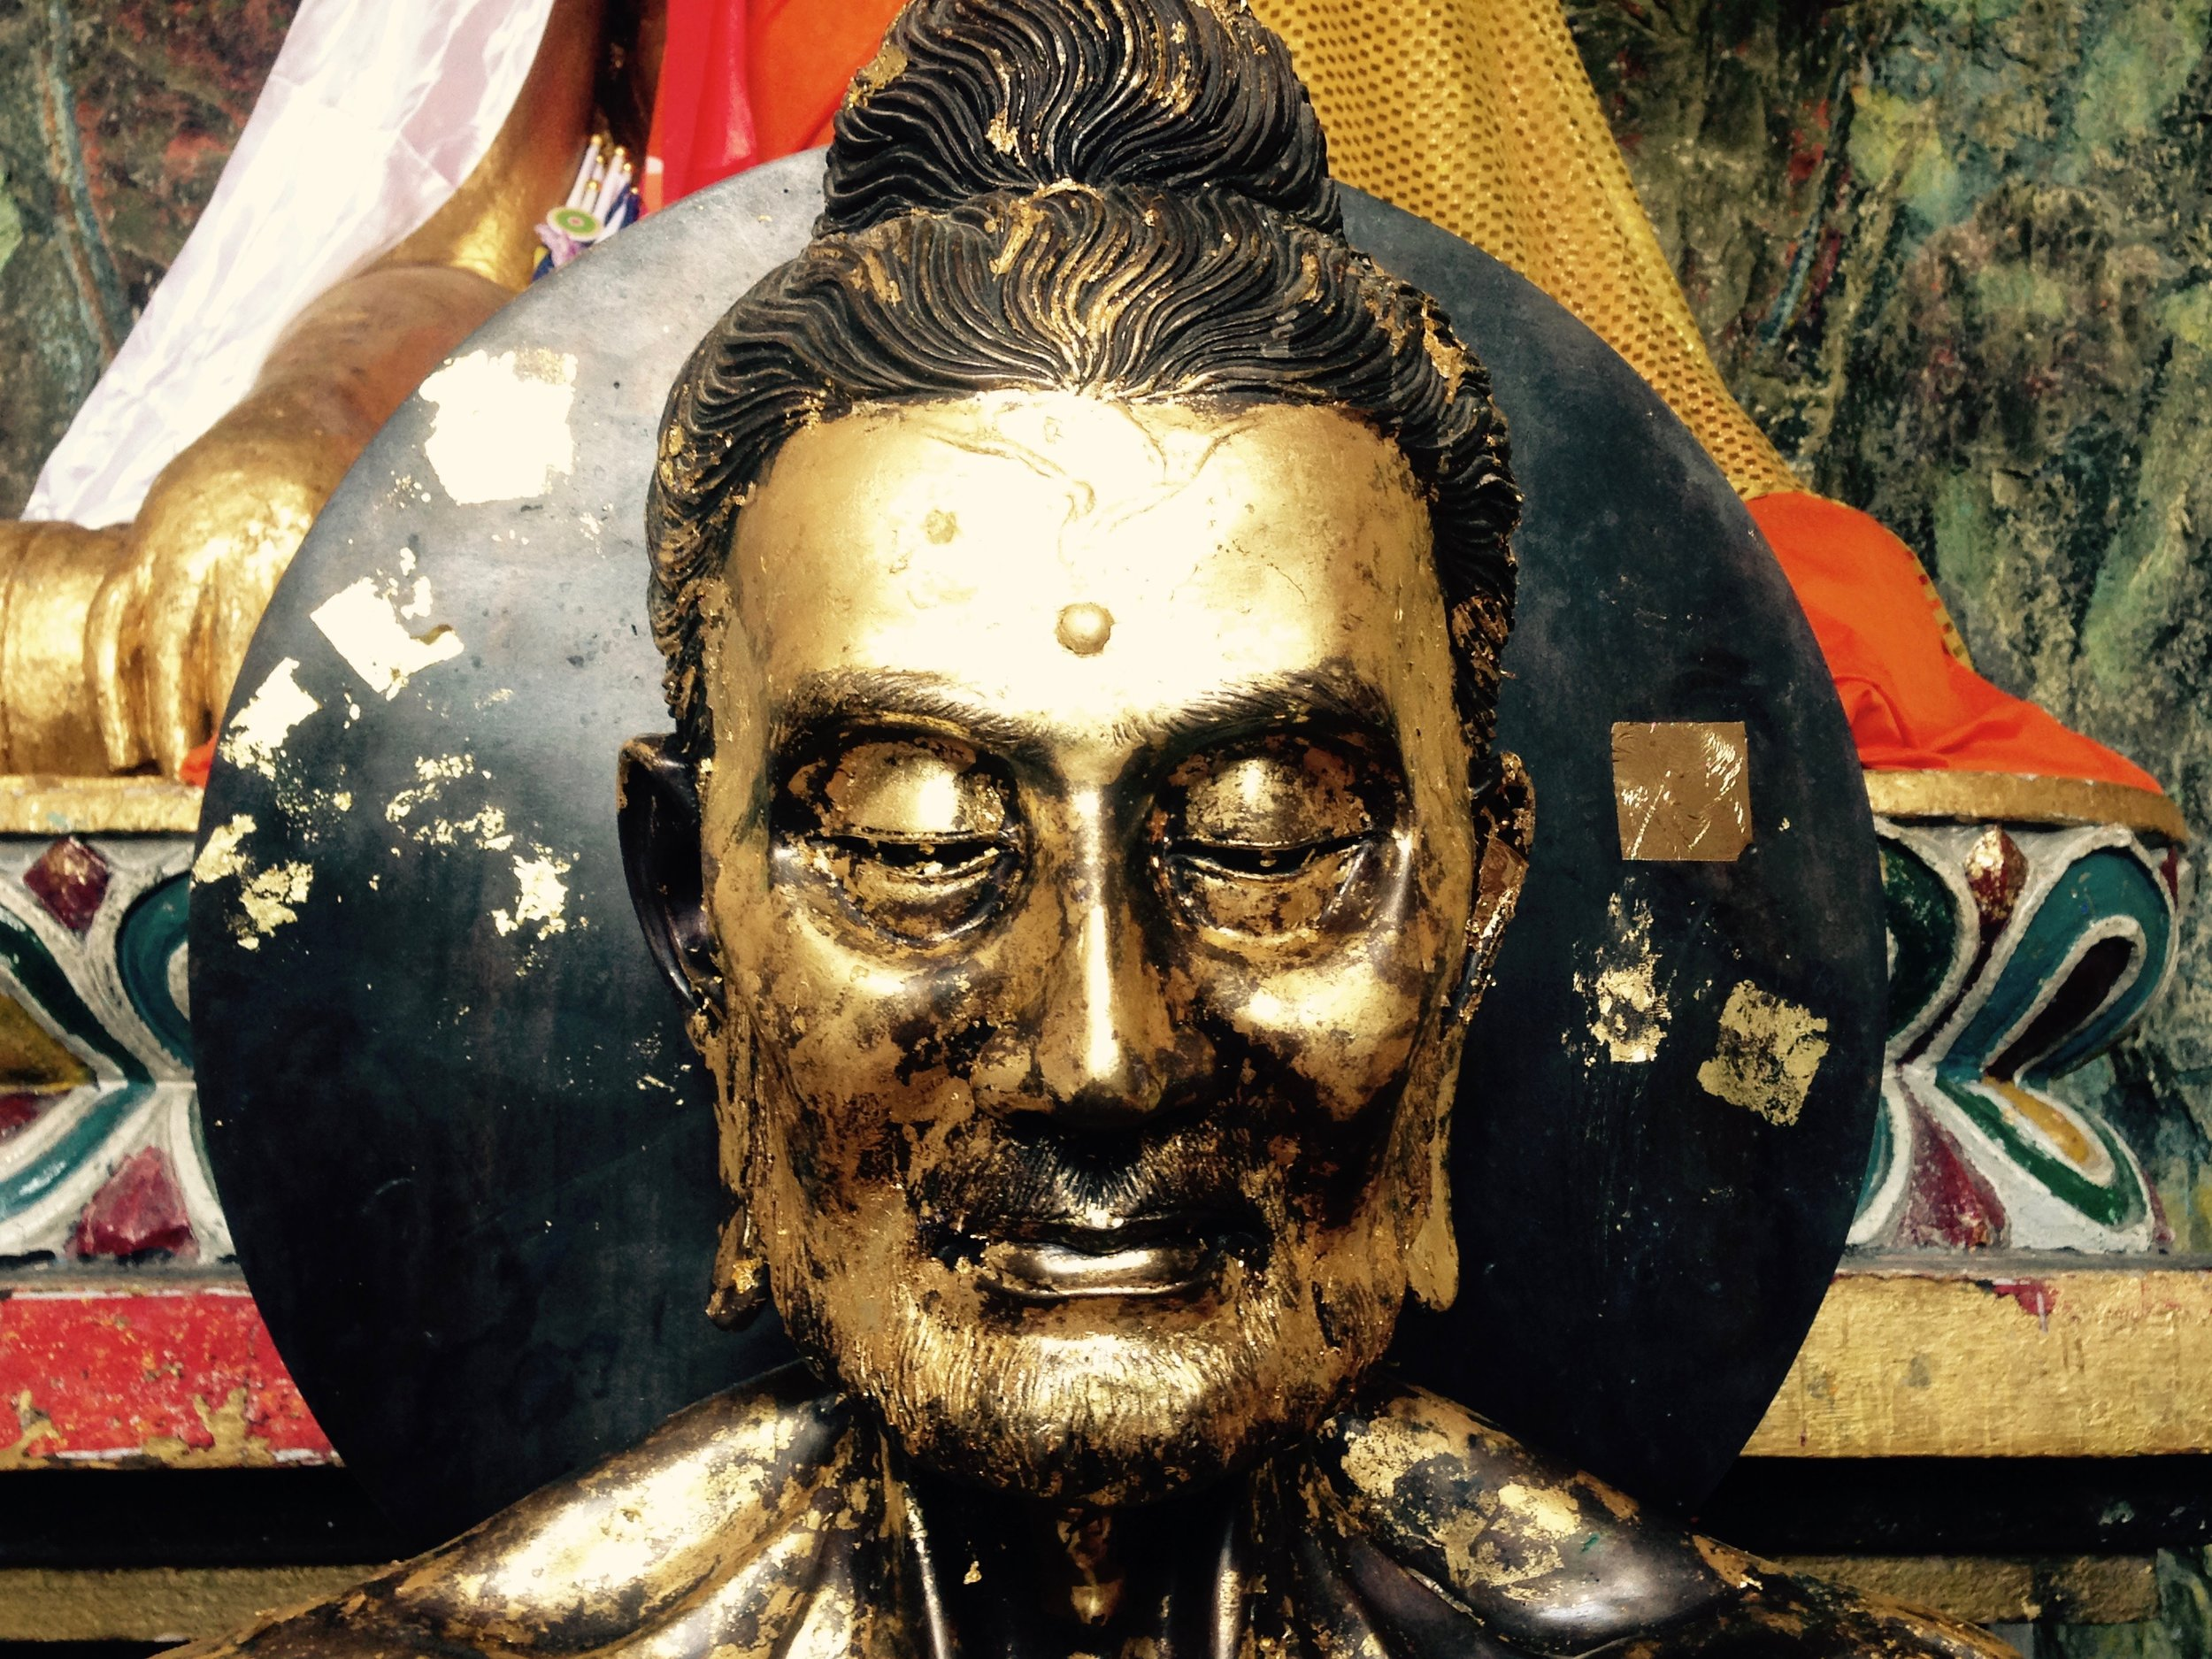 Buddha's emaciated face after 6 years of austere mediation in a dark cave